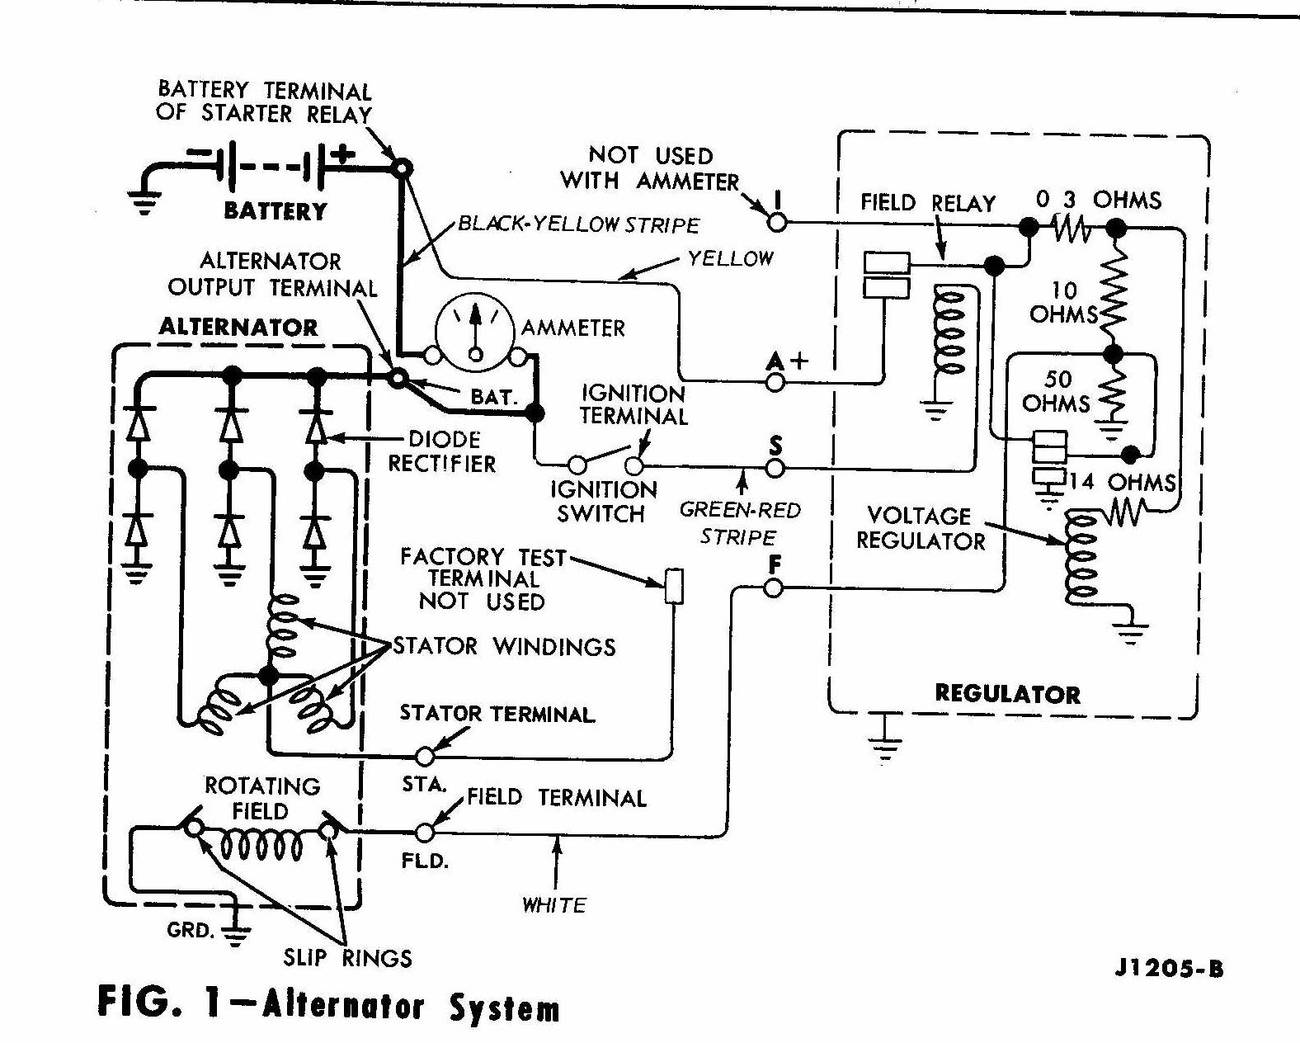 Alternator Voltage Regulator Diagram 24v Wiring